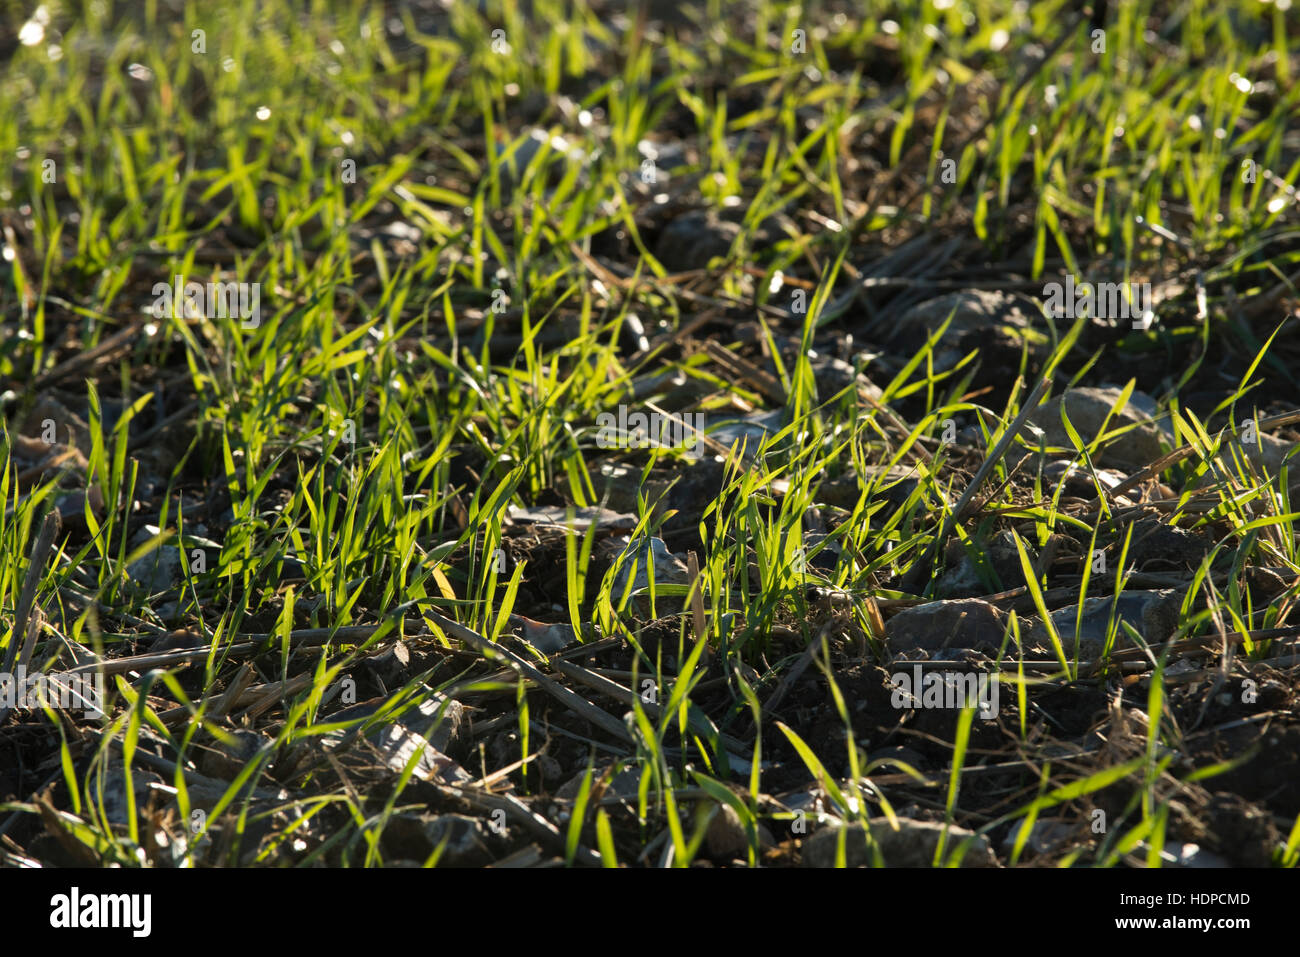 A seedling winter wheat crop emerging on stony ground, November, Berkshire - Stock Image